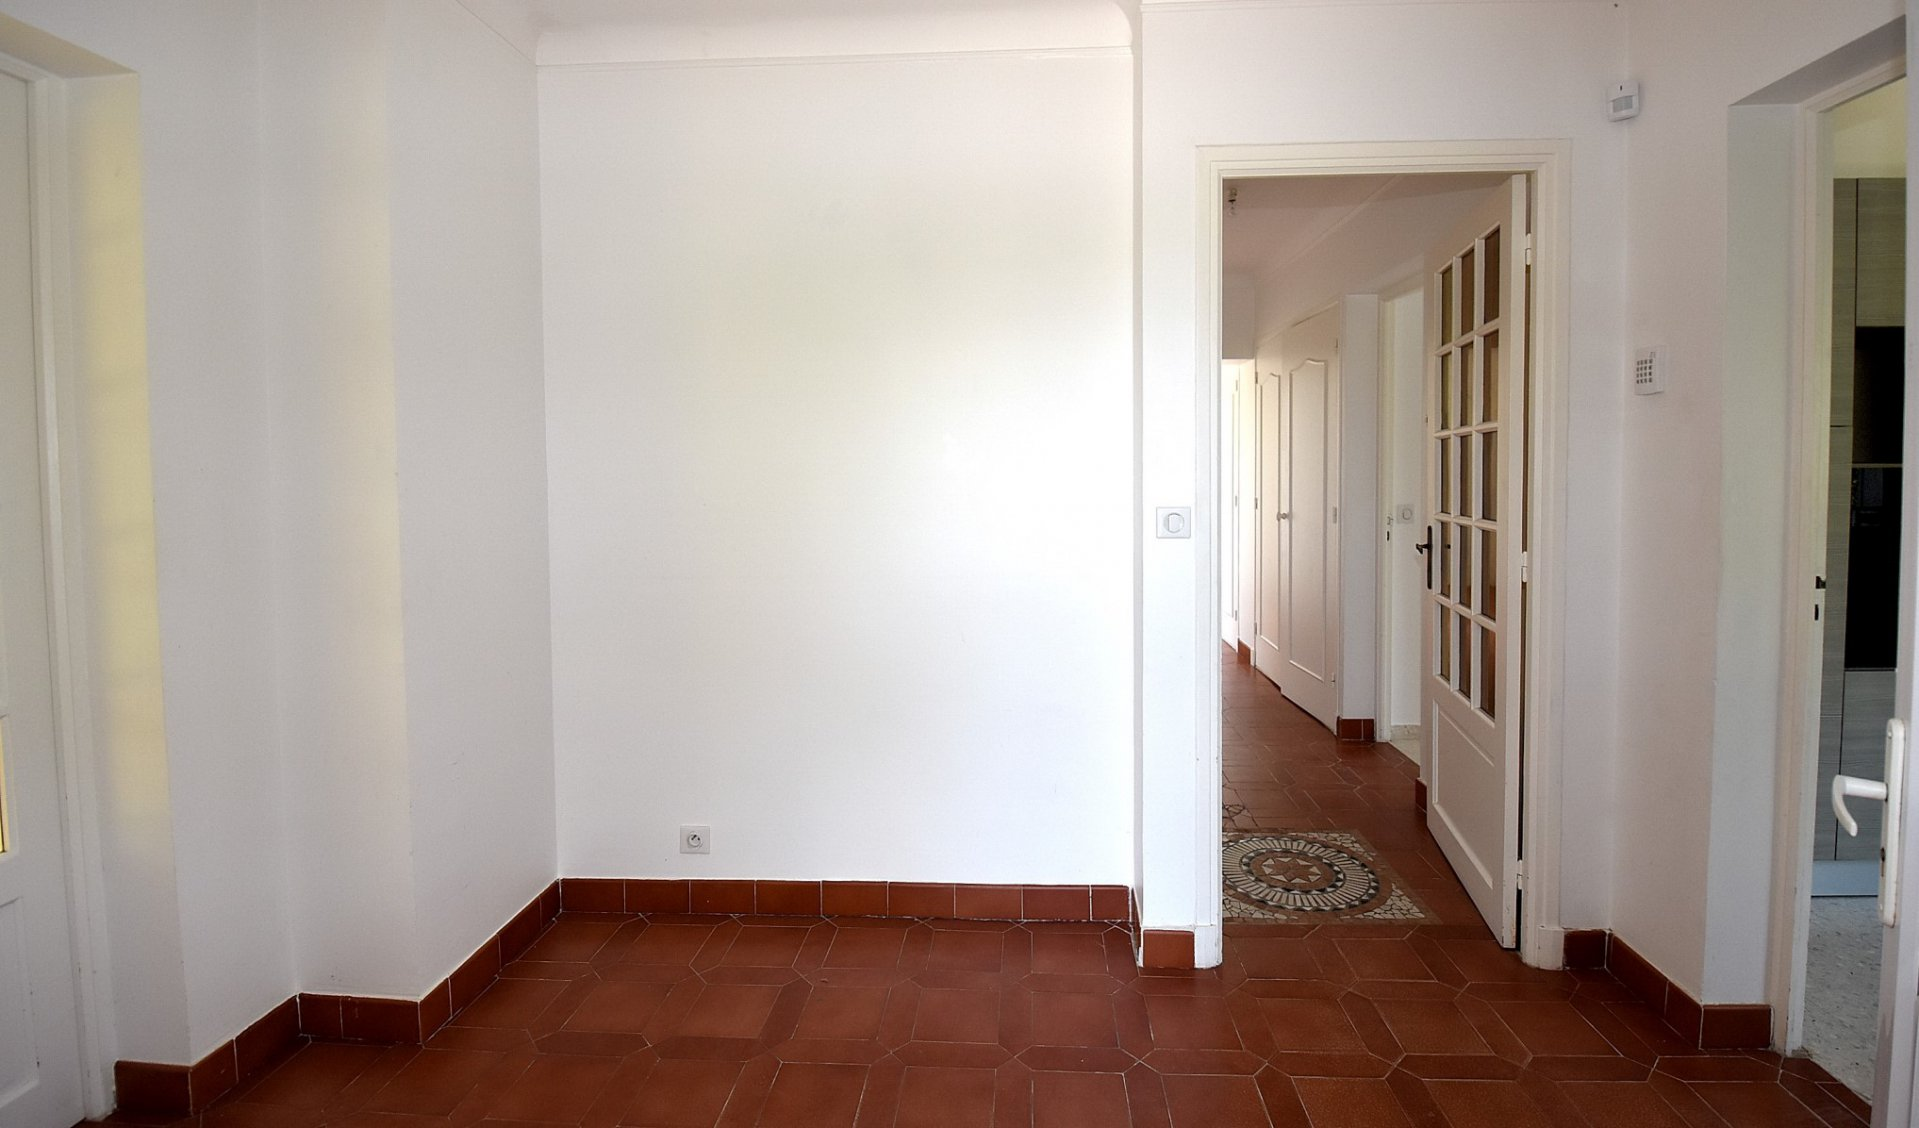 Location Villa - Valbonne